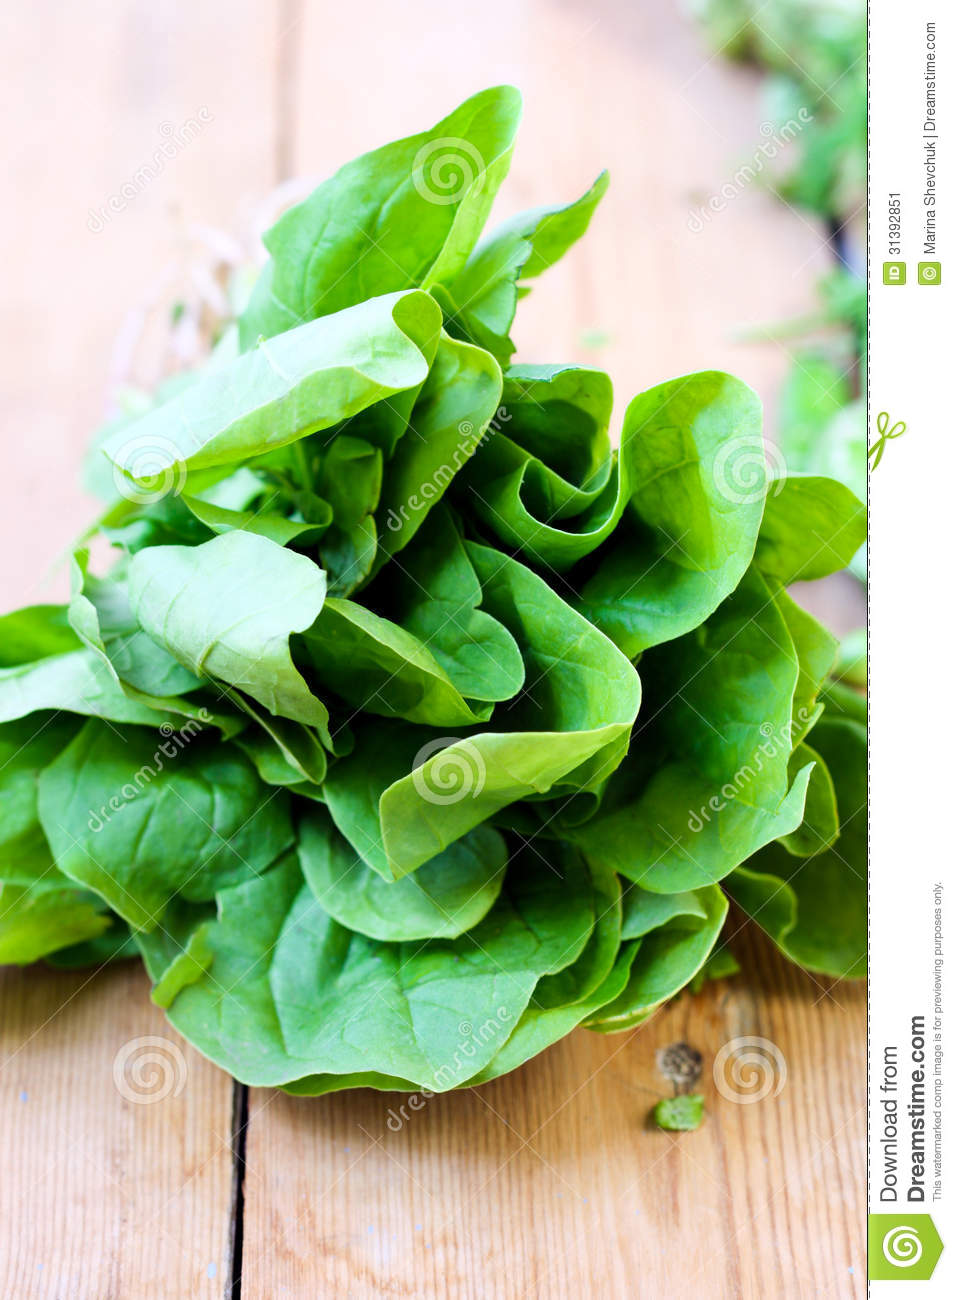 Spinach Leaves Stock Image - Image: 31392851